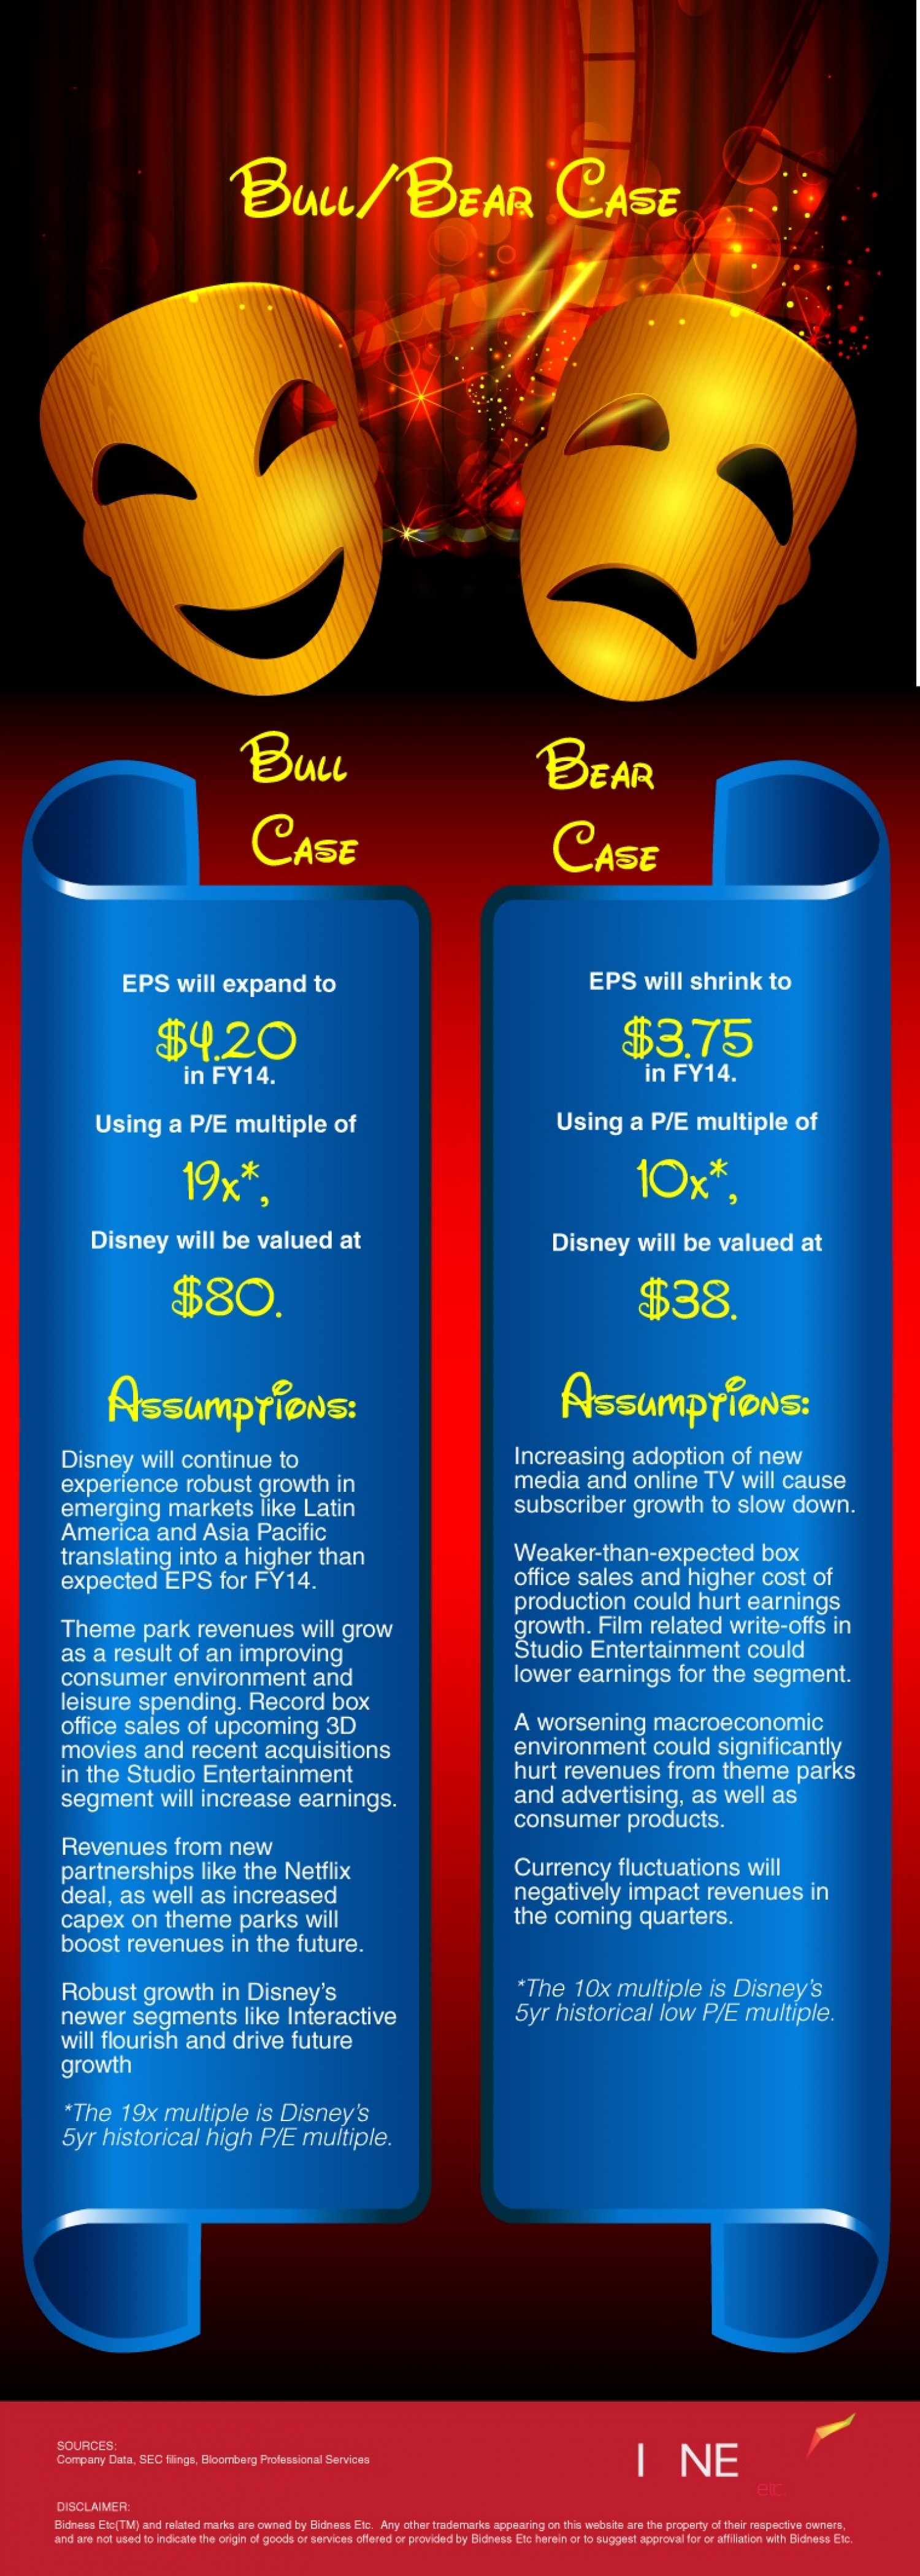 Disney (DIS) Bull Bear Case Infographic